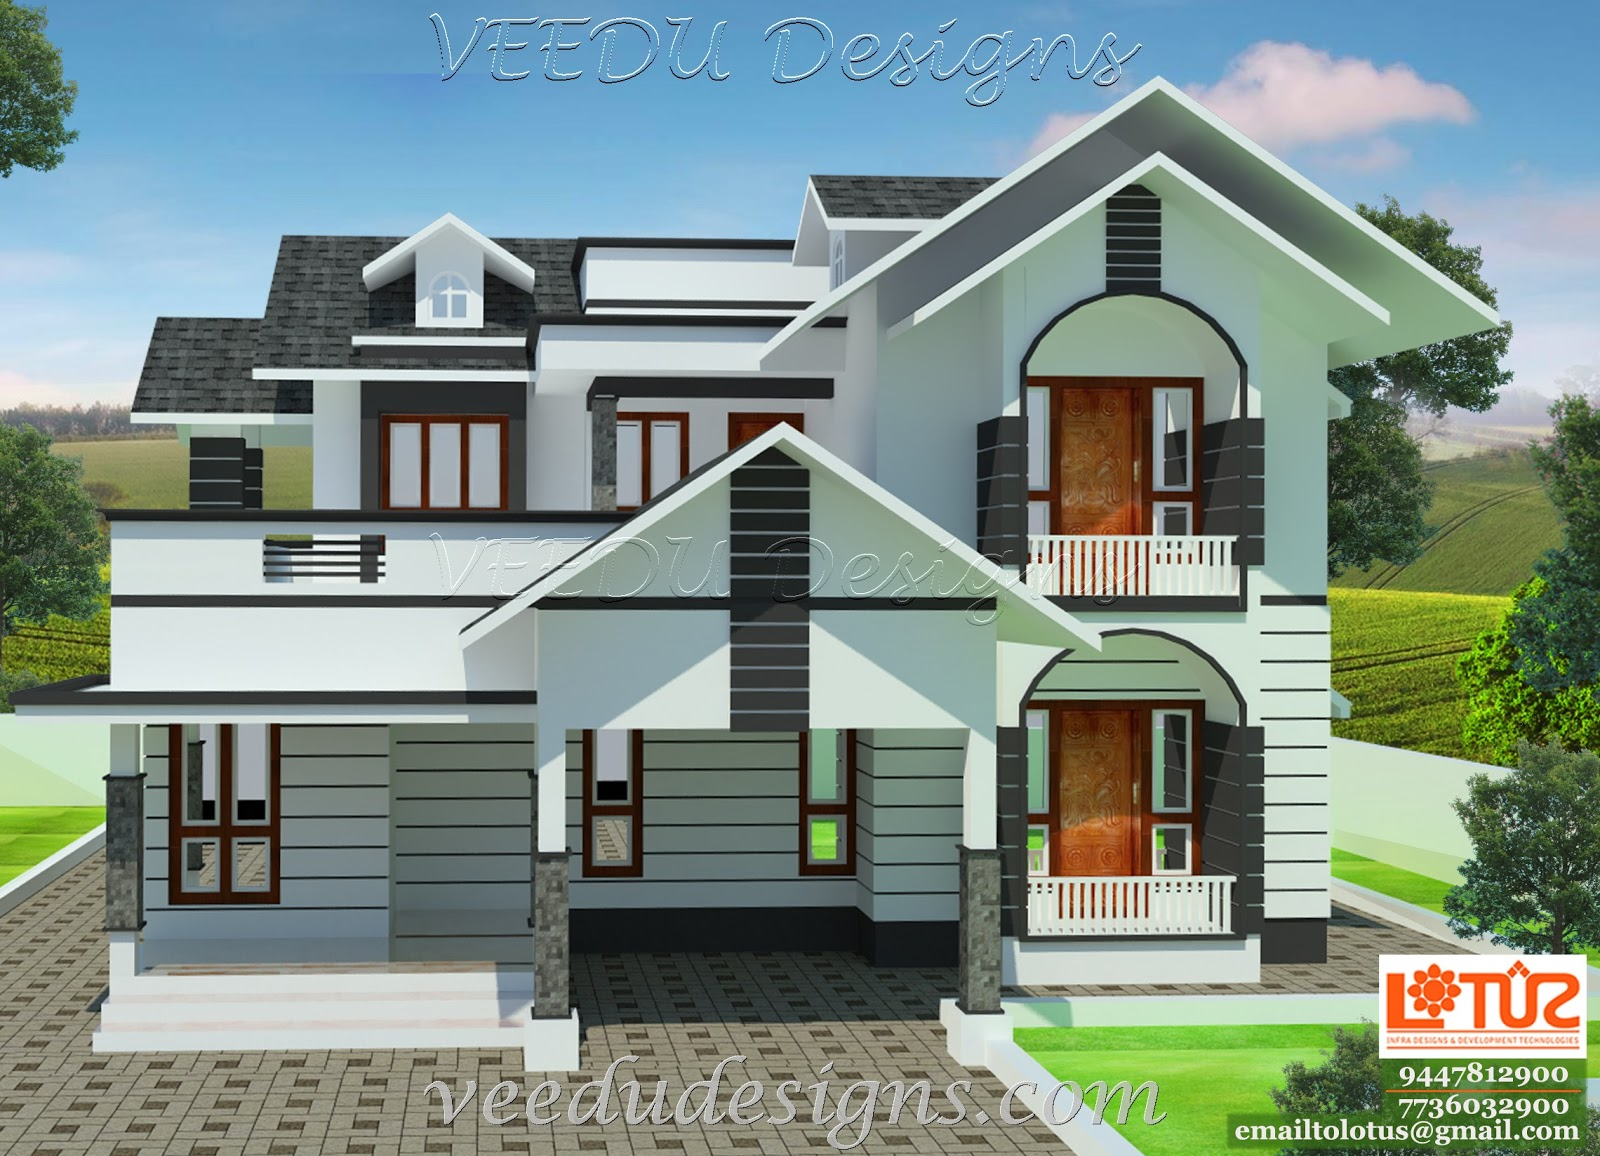 Veedu Designs July 2015